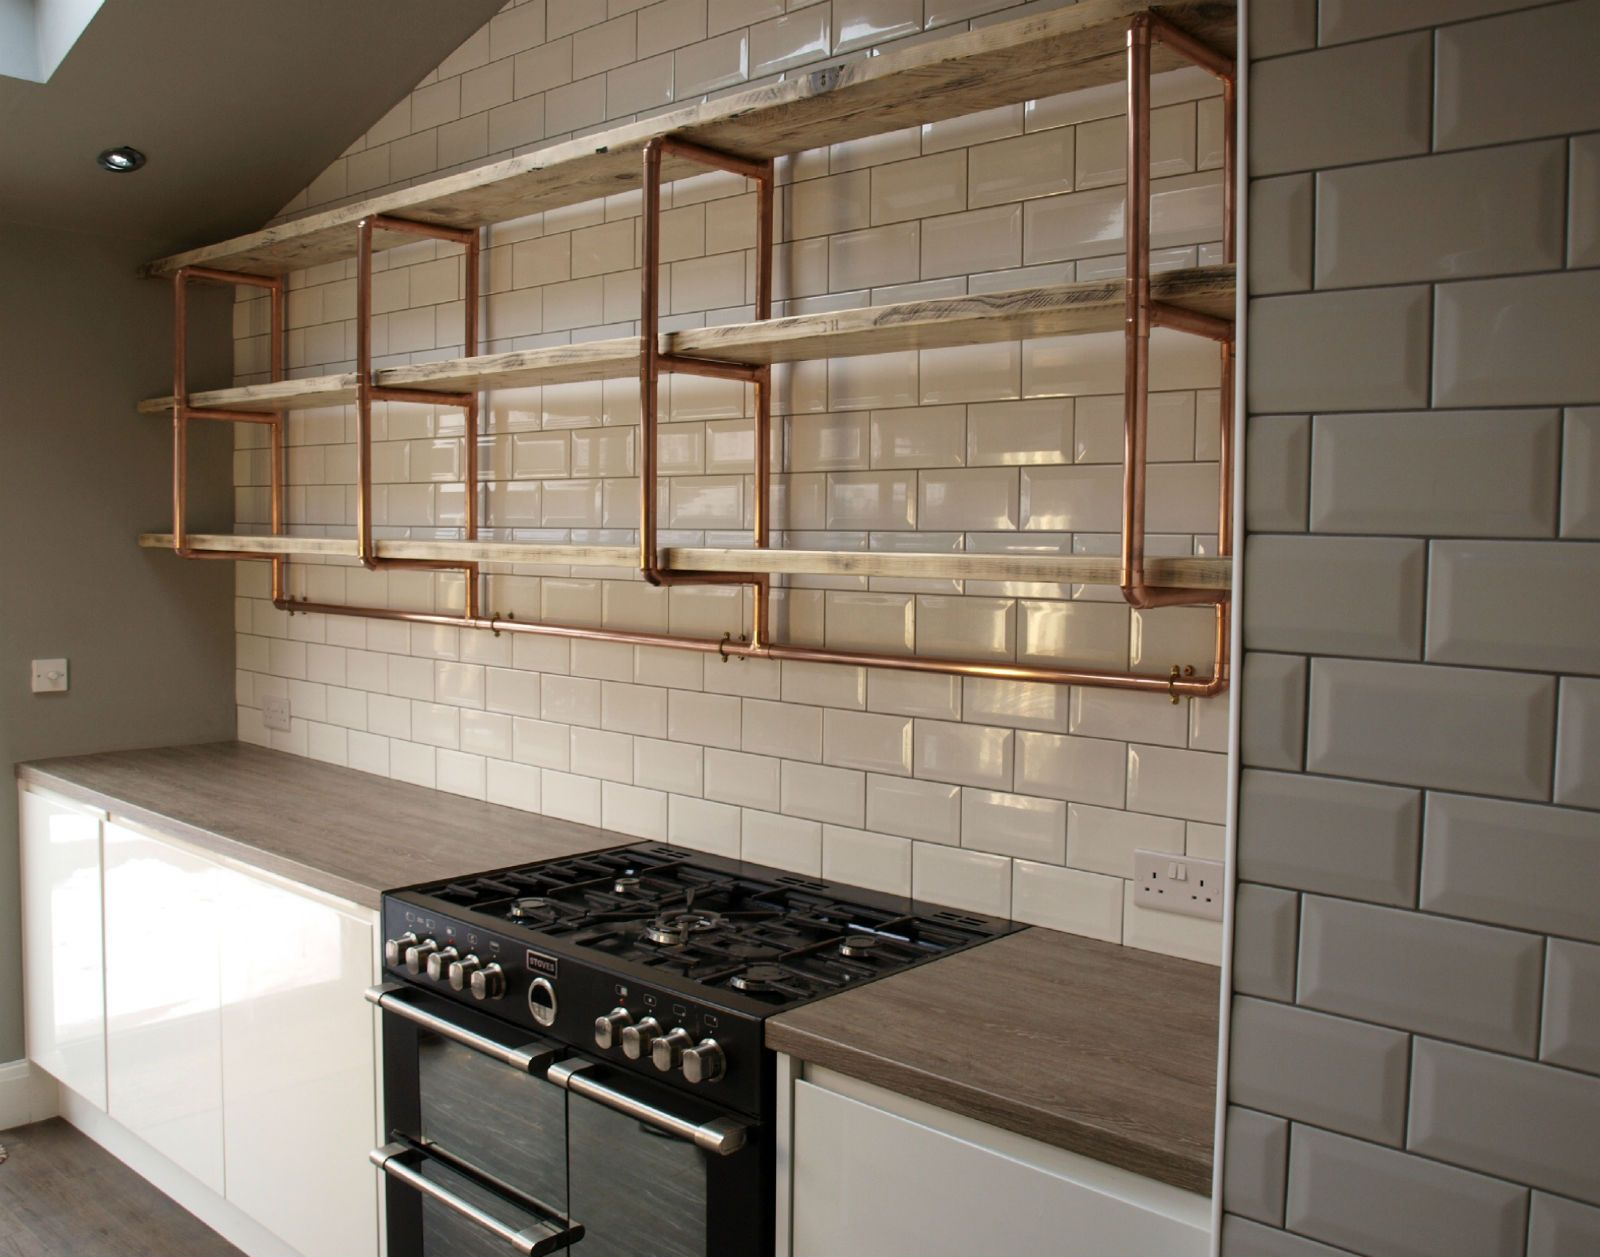 Cabinet Mesmerizing Commercial Kitchen Shelves 17 Wall Bookshelves Long Shelf Small Floating Invisible Building Stainless Design Awesome Diy Solid Wood For